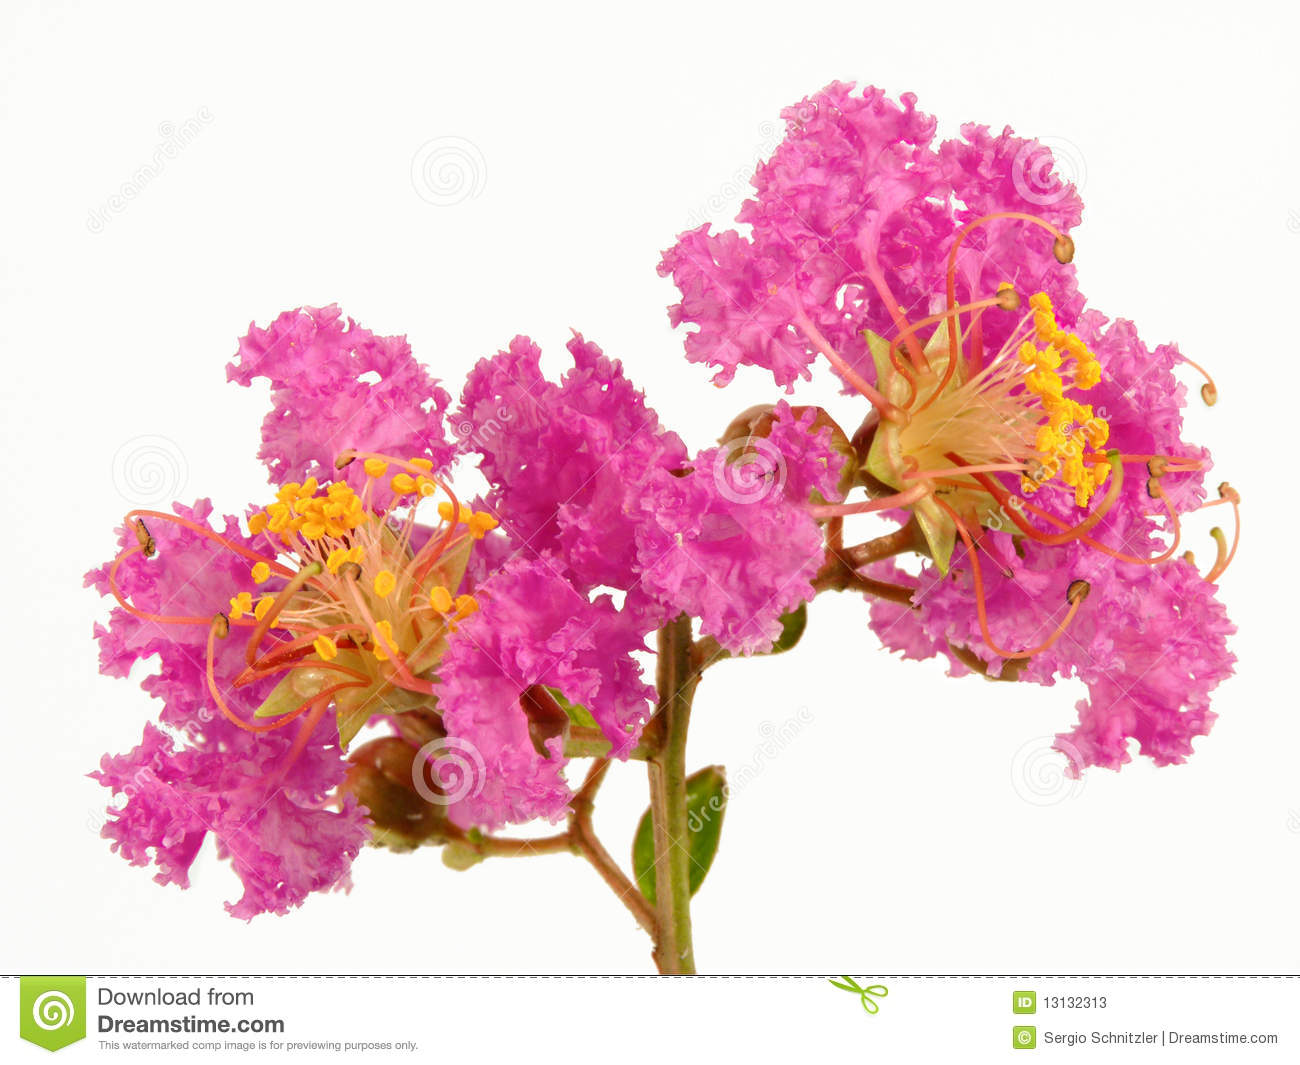 Crape Myrtle clipart #17, Download drawings